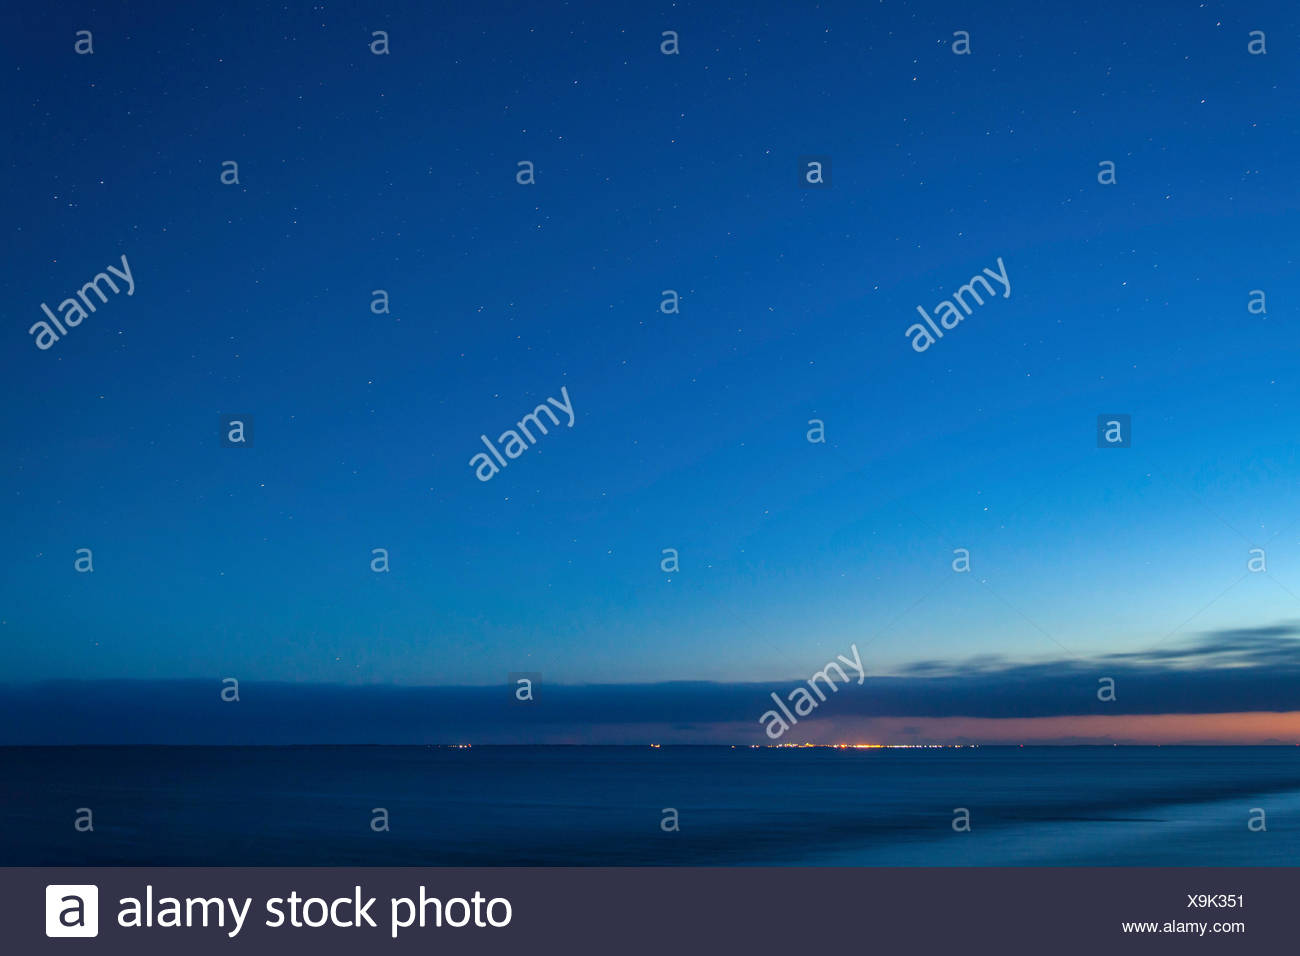 stars over island Juist, Germany, Lower Saxony, Norddeich Stock Photo